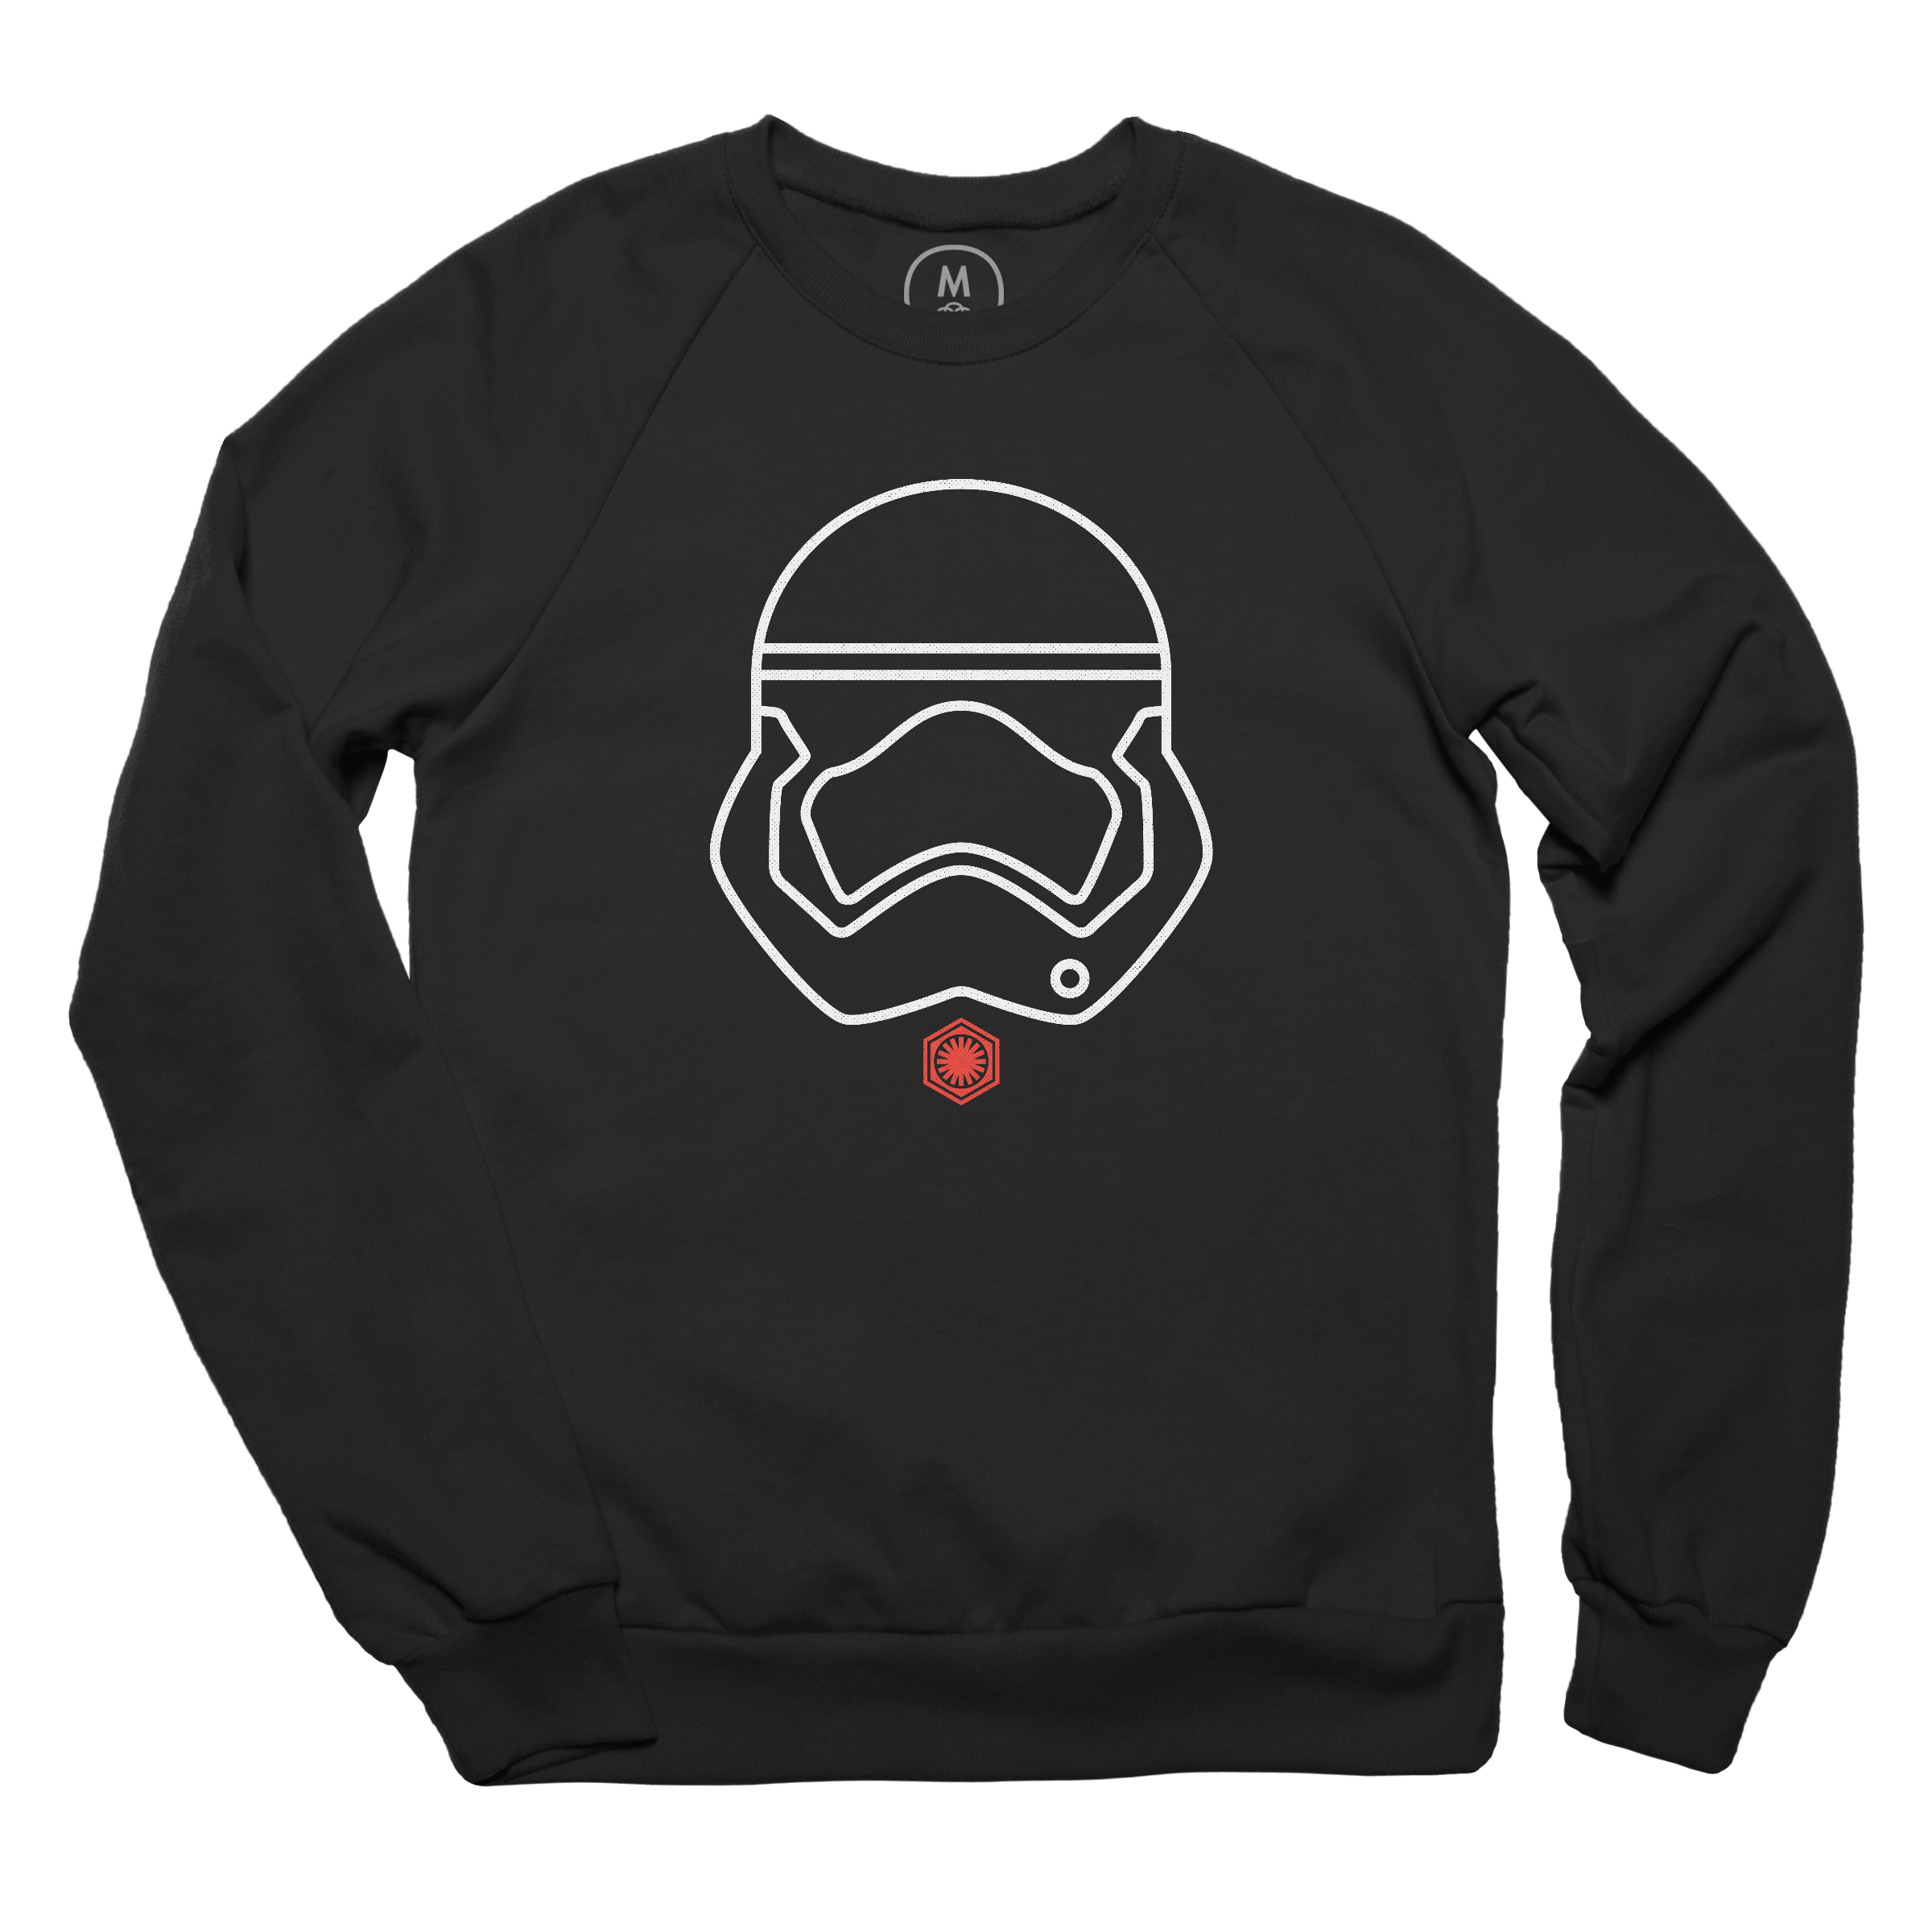 Enlist Today! Pullover Crewneck